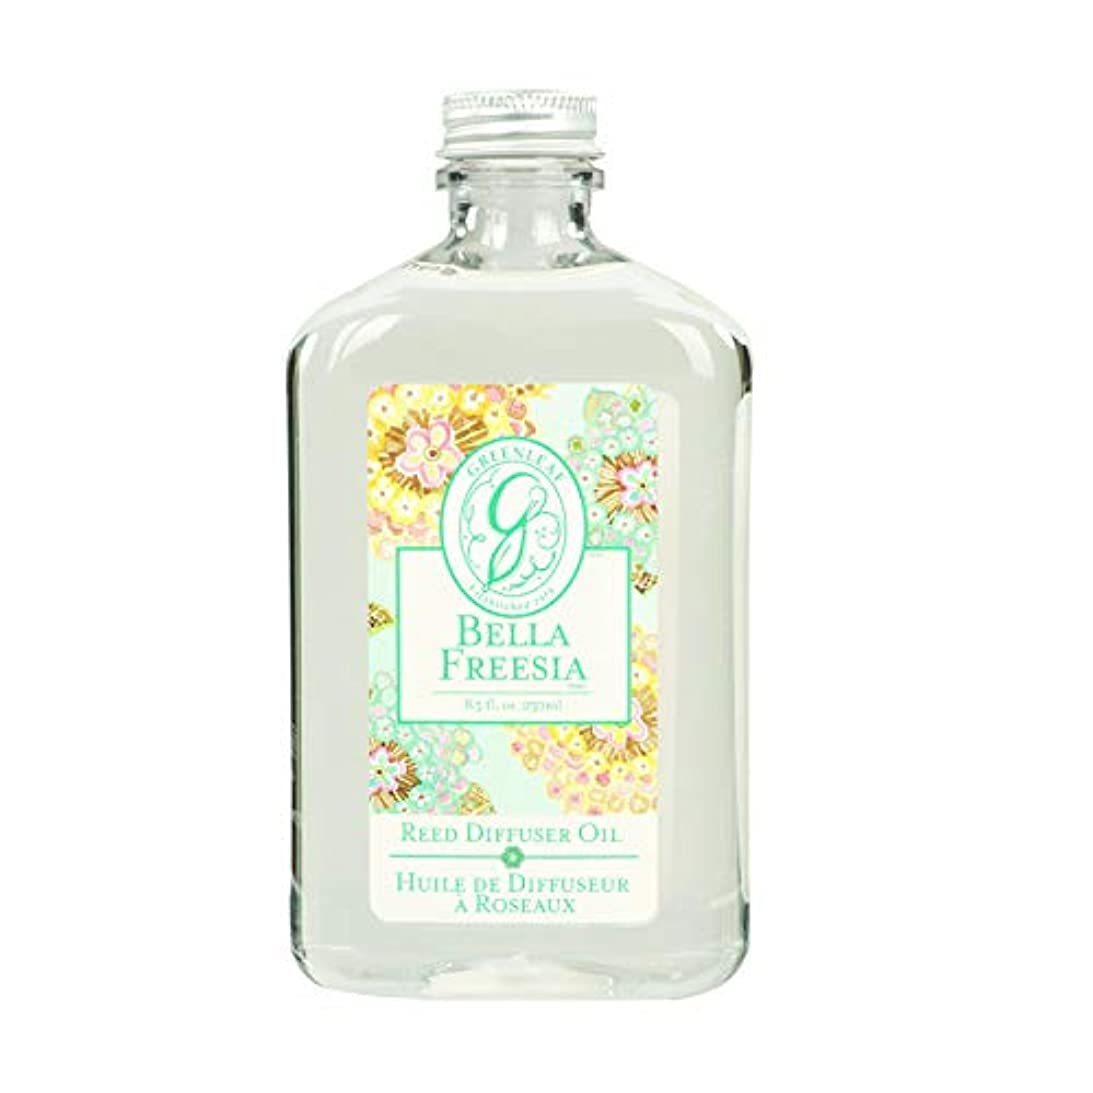 第三口述するインテリアGREEN LEAF REED DIFFUSER OIL REFILL BELLA FREESIA